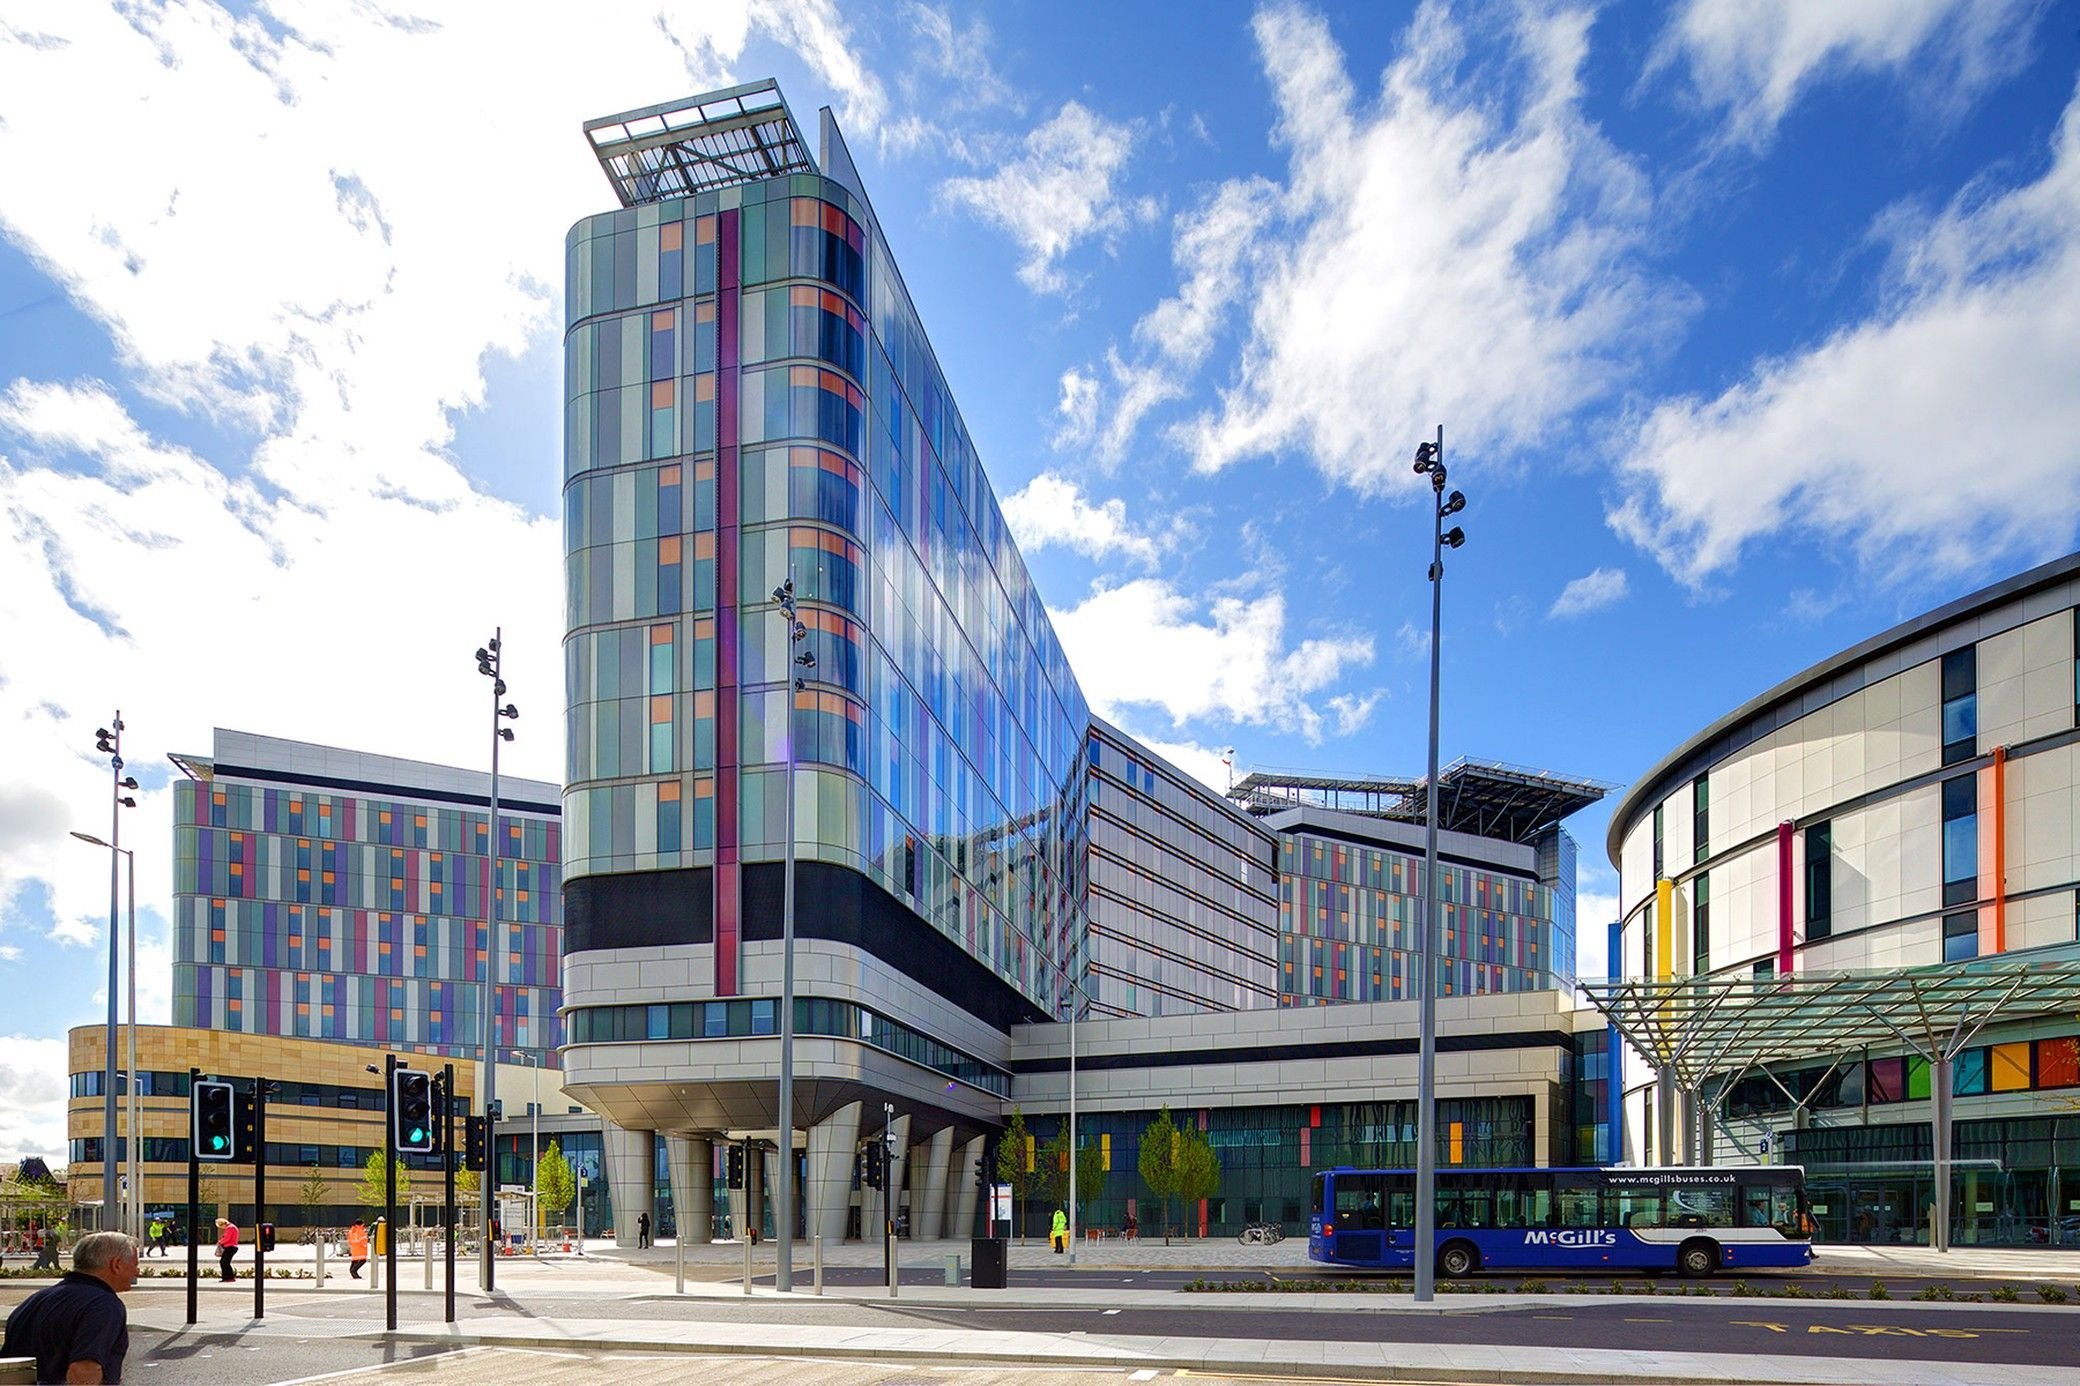 Queen Elizabeth University & Royal Hospital for Children